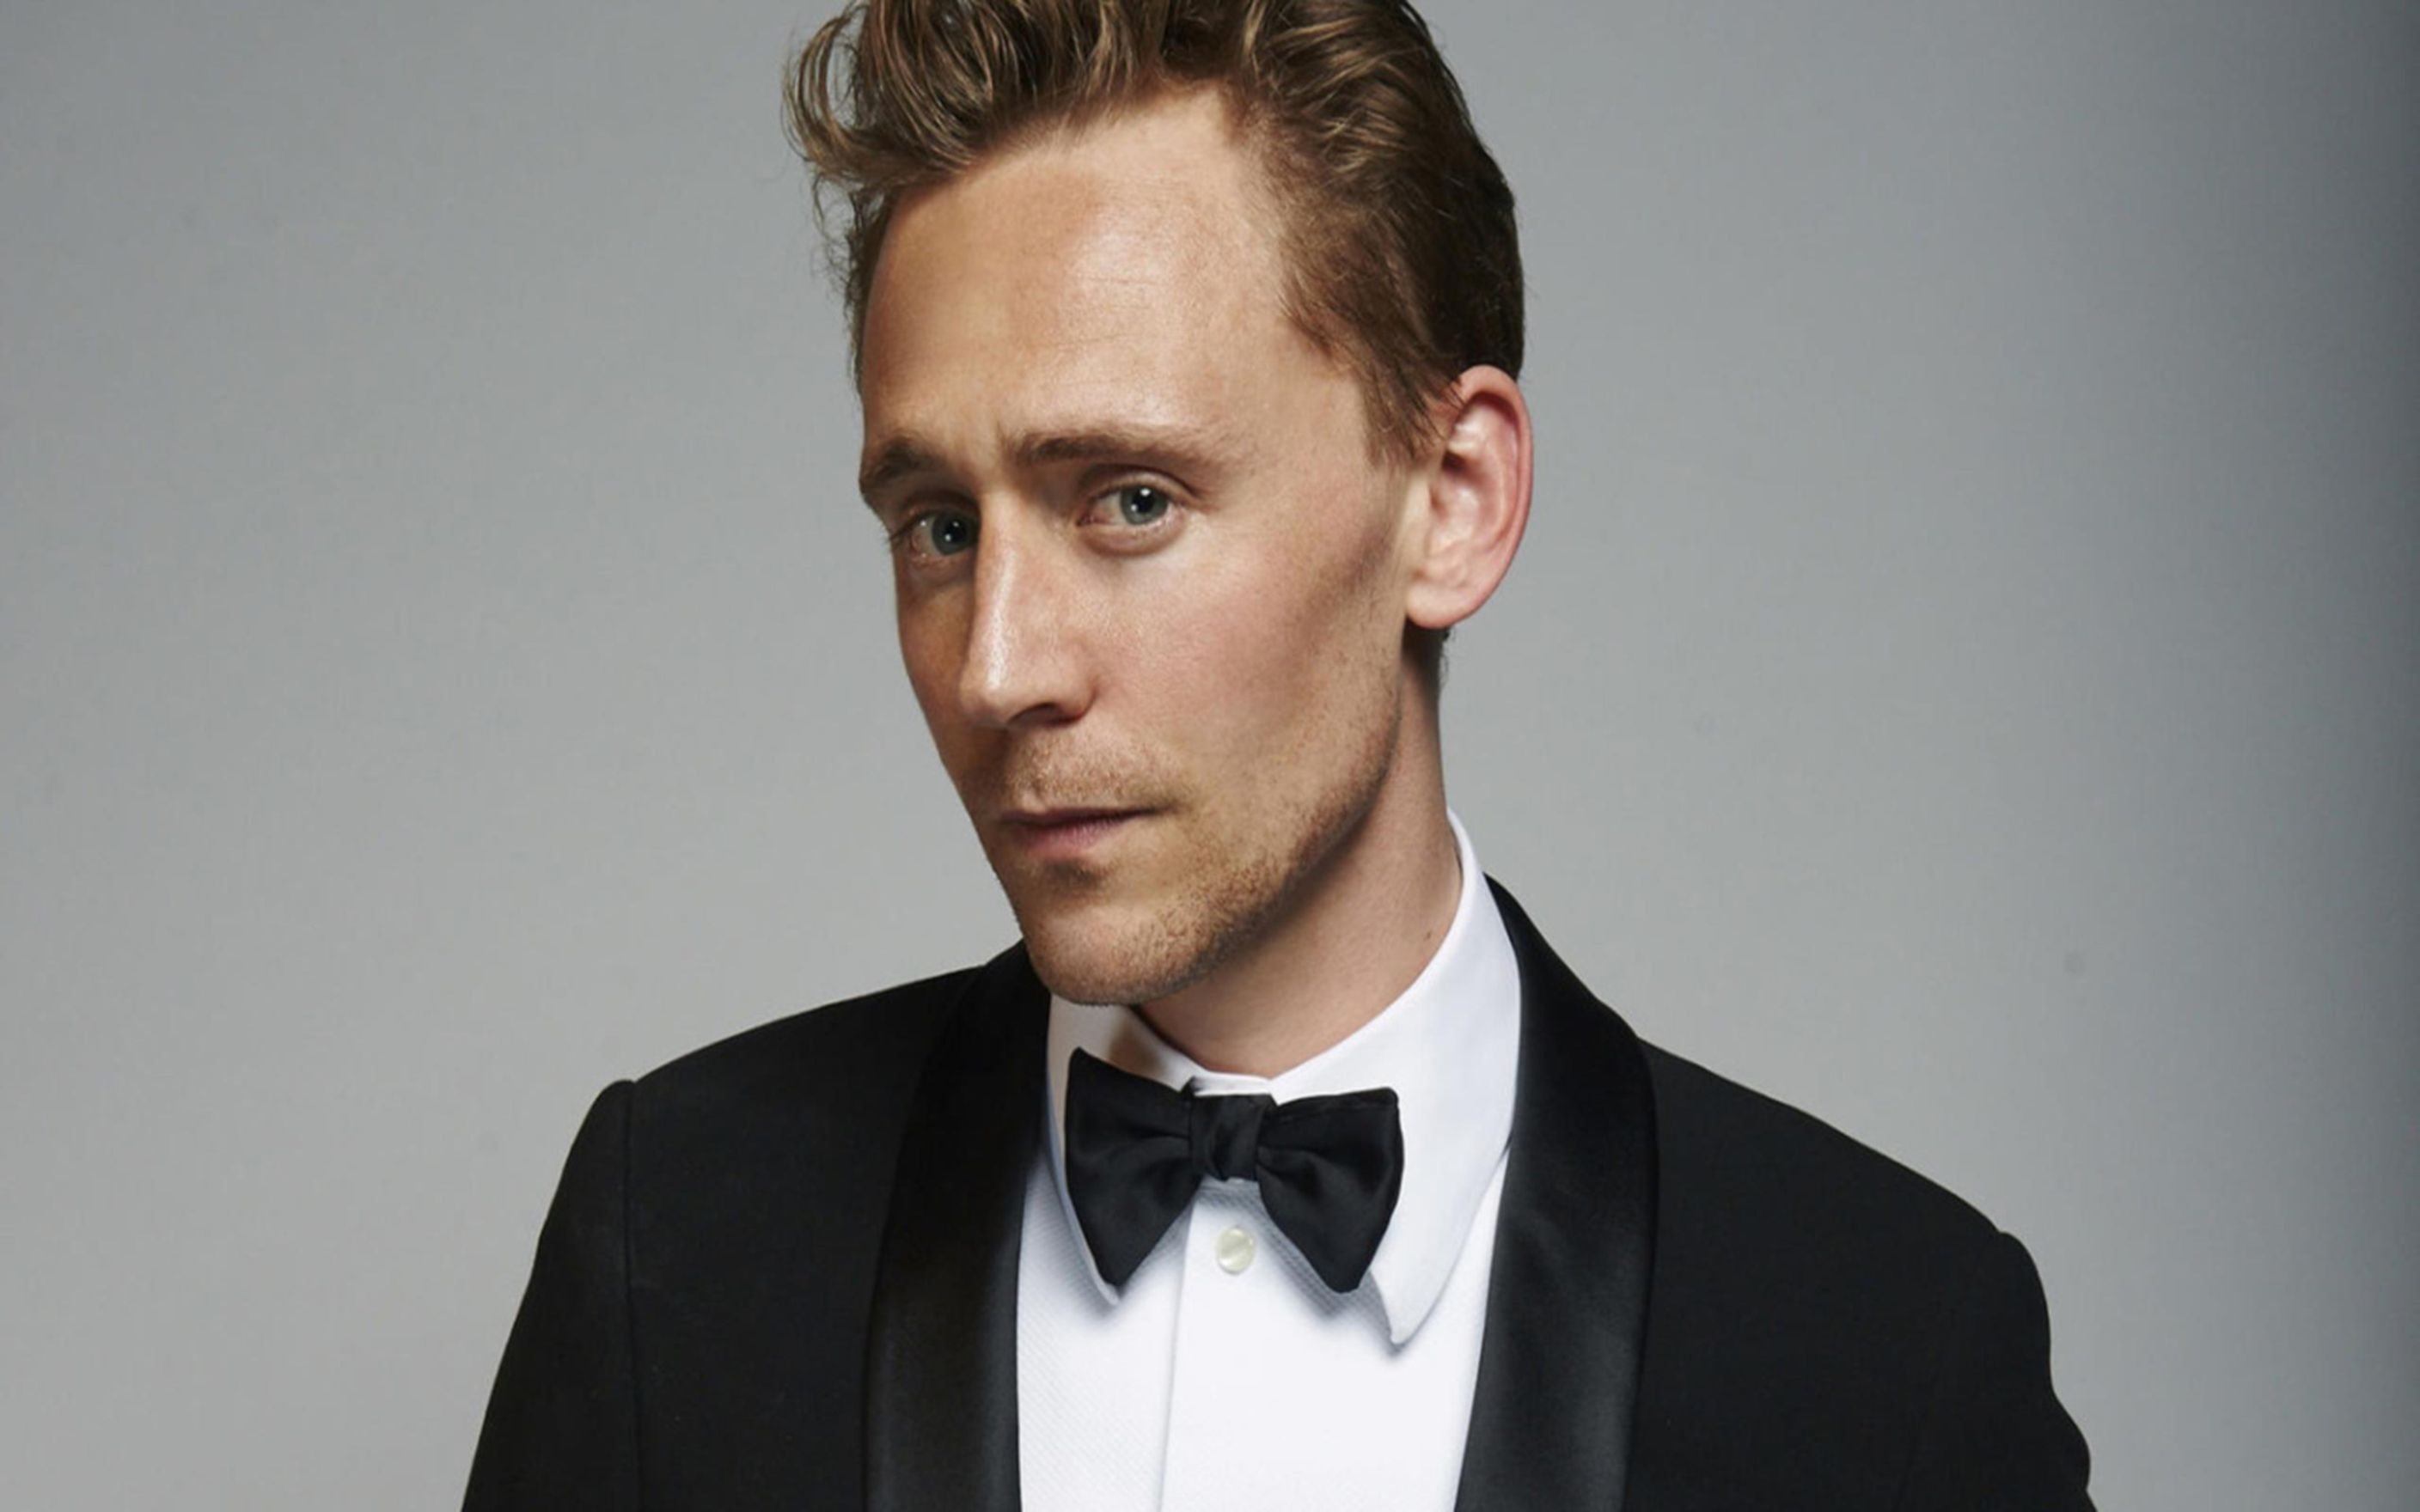 Download free HD Tom Hiddleston Wallpaper, image